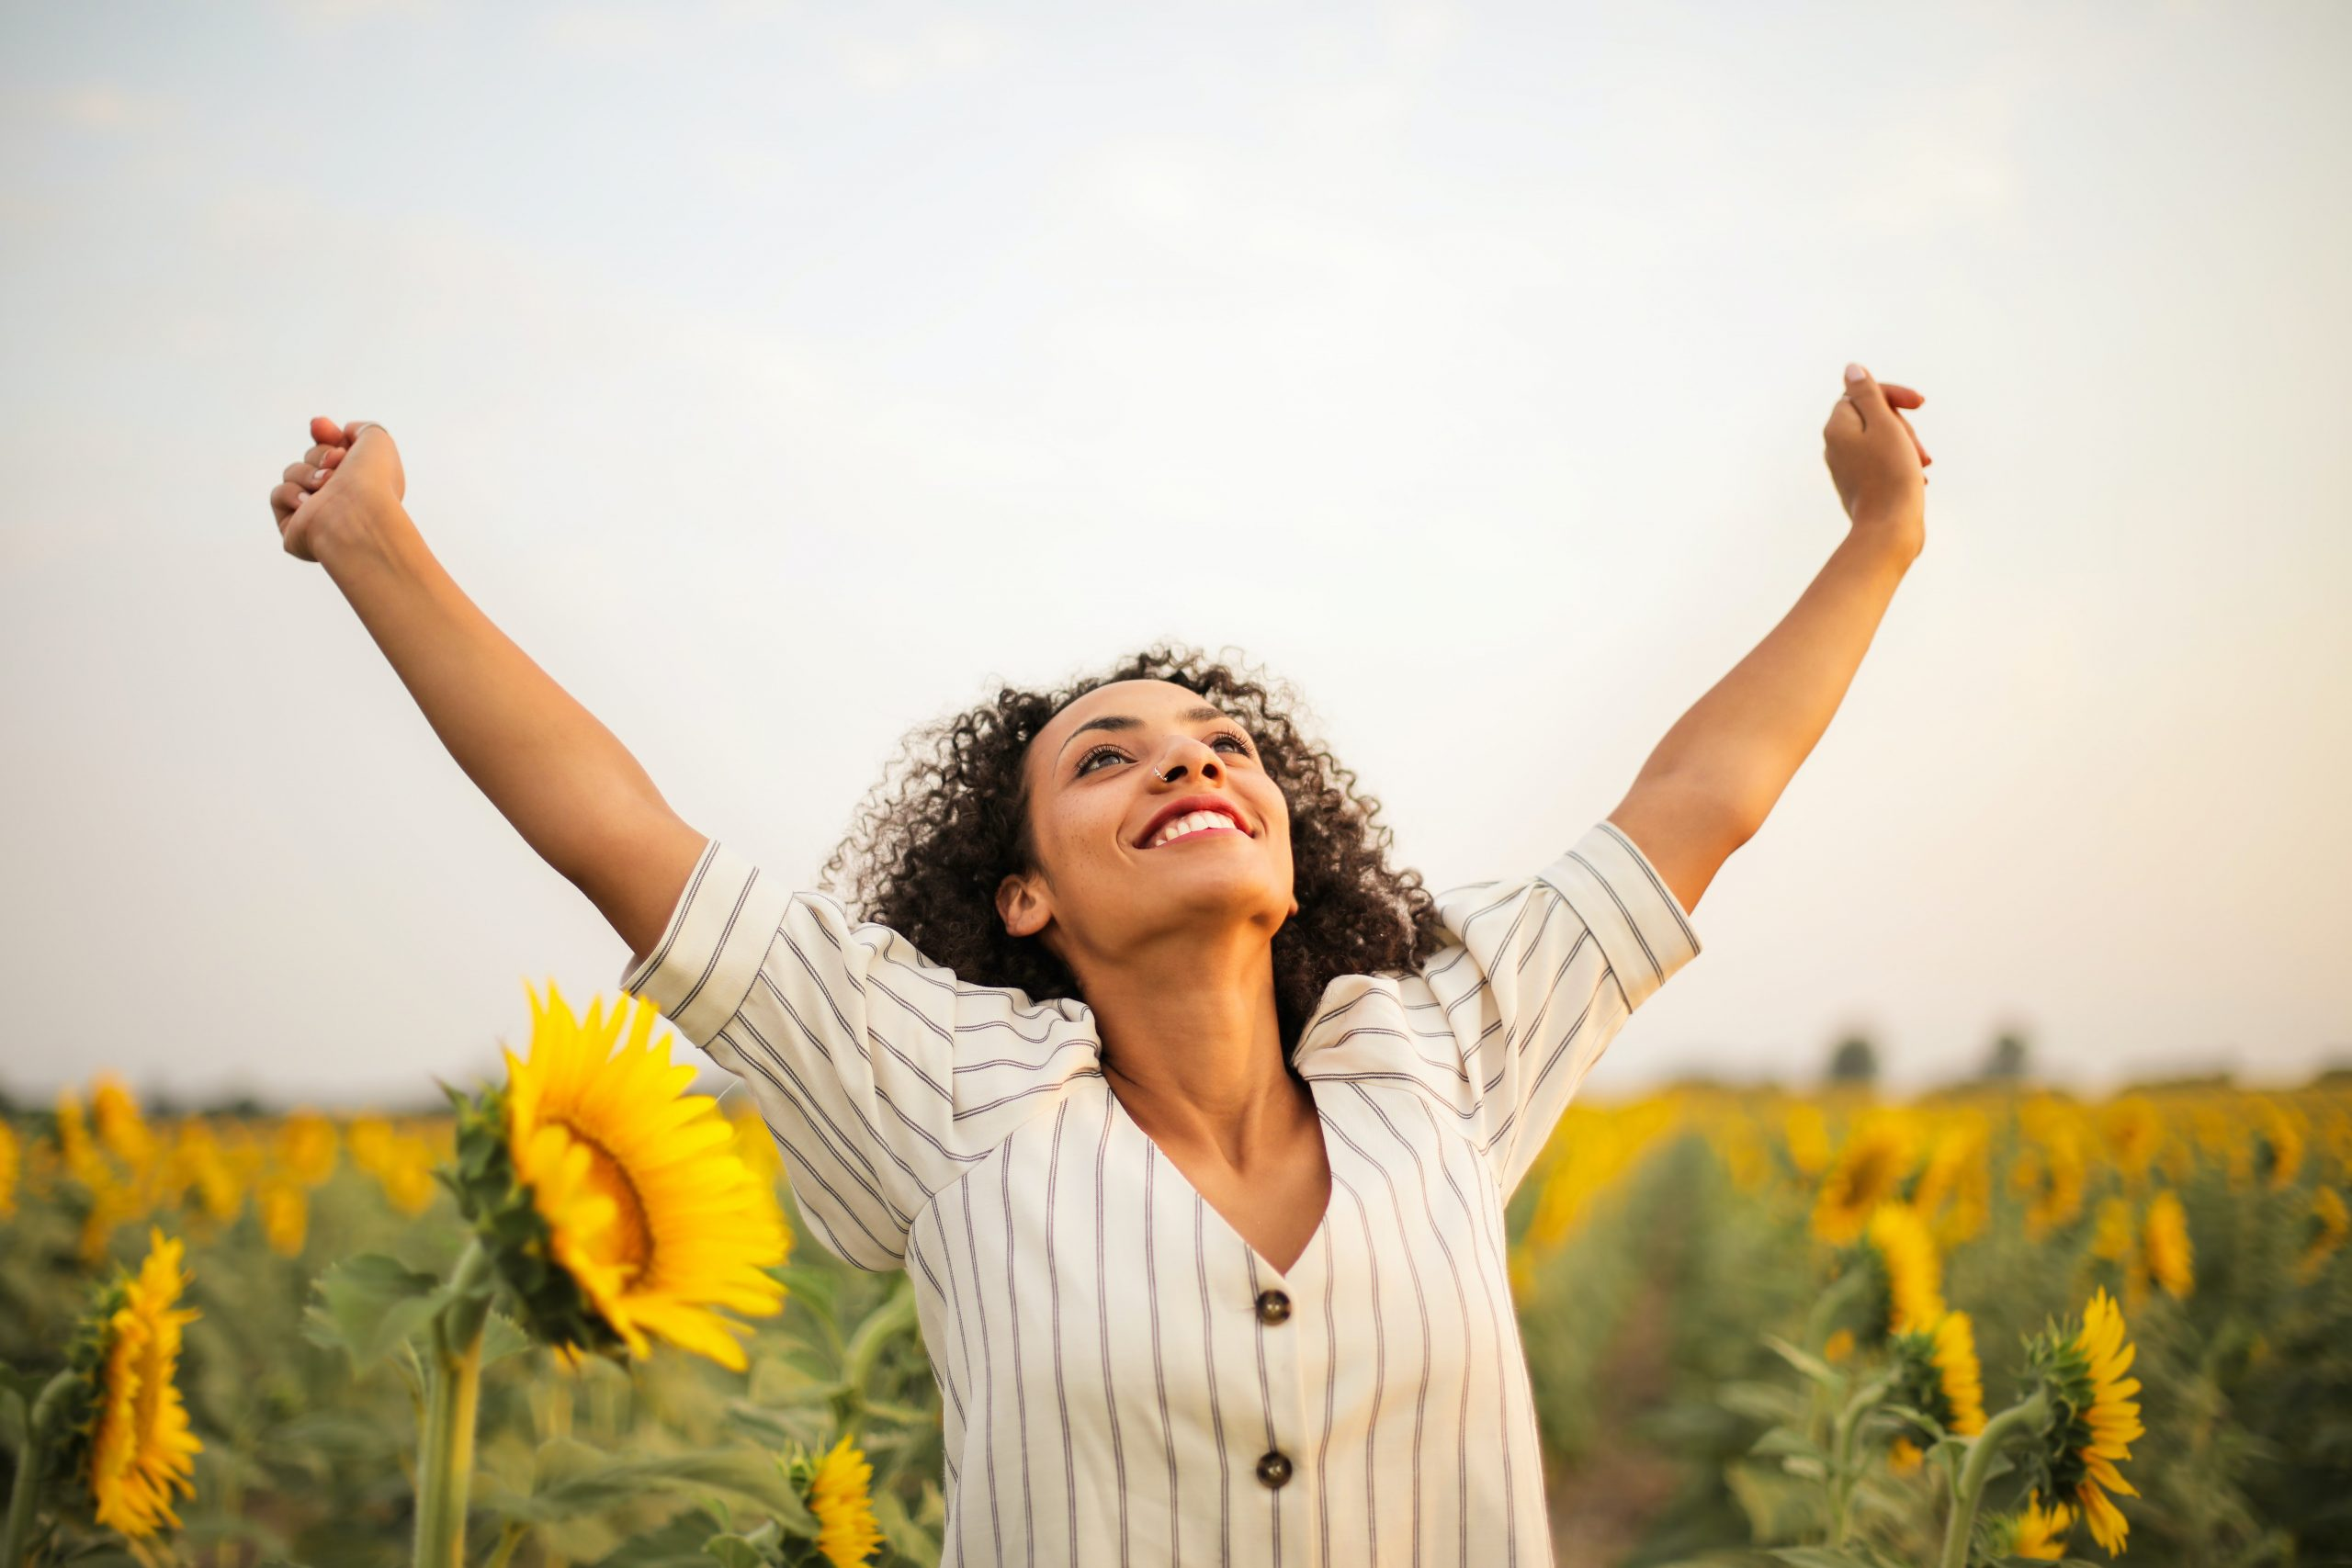 photo of woman standing on sunflower field 3756168 scaled